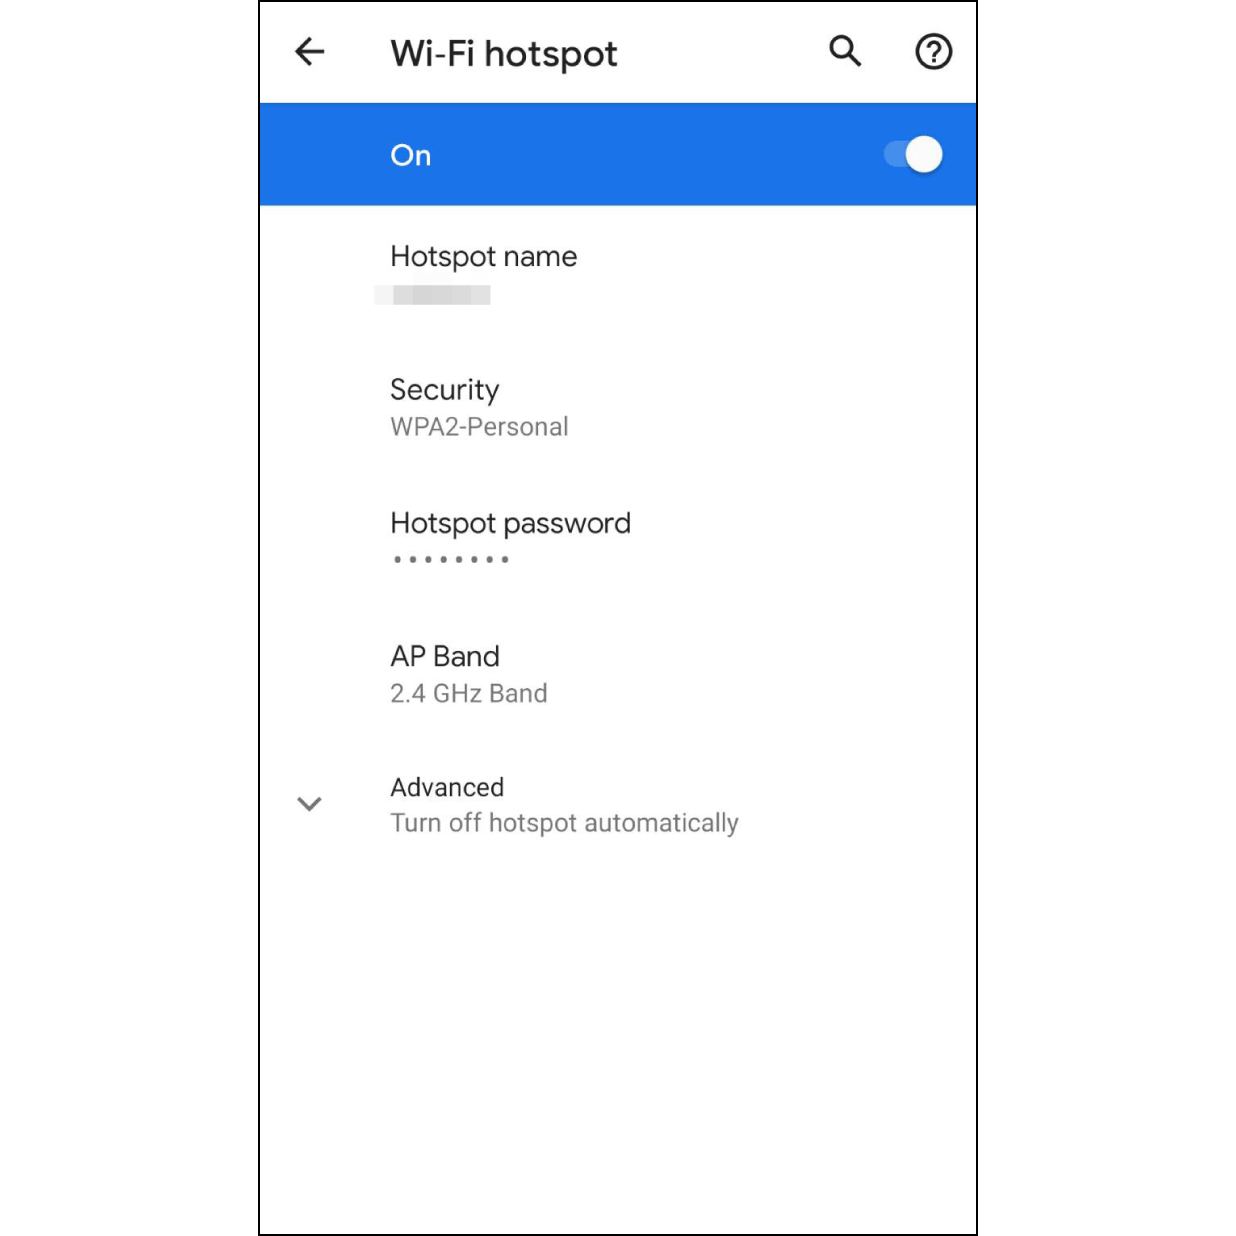 9. Turn on Personal HotspotWhile it is reconnecting, please go to the setting page to turn on the personal hotspot.